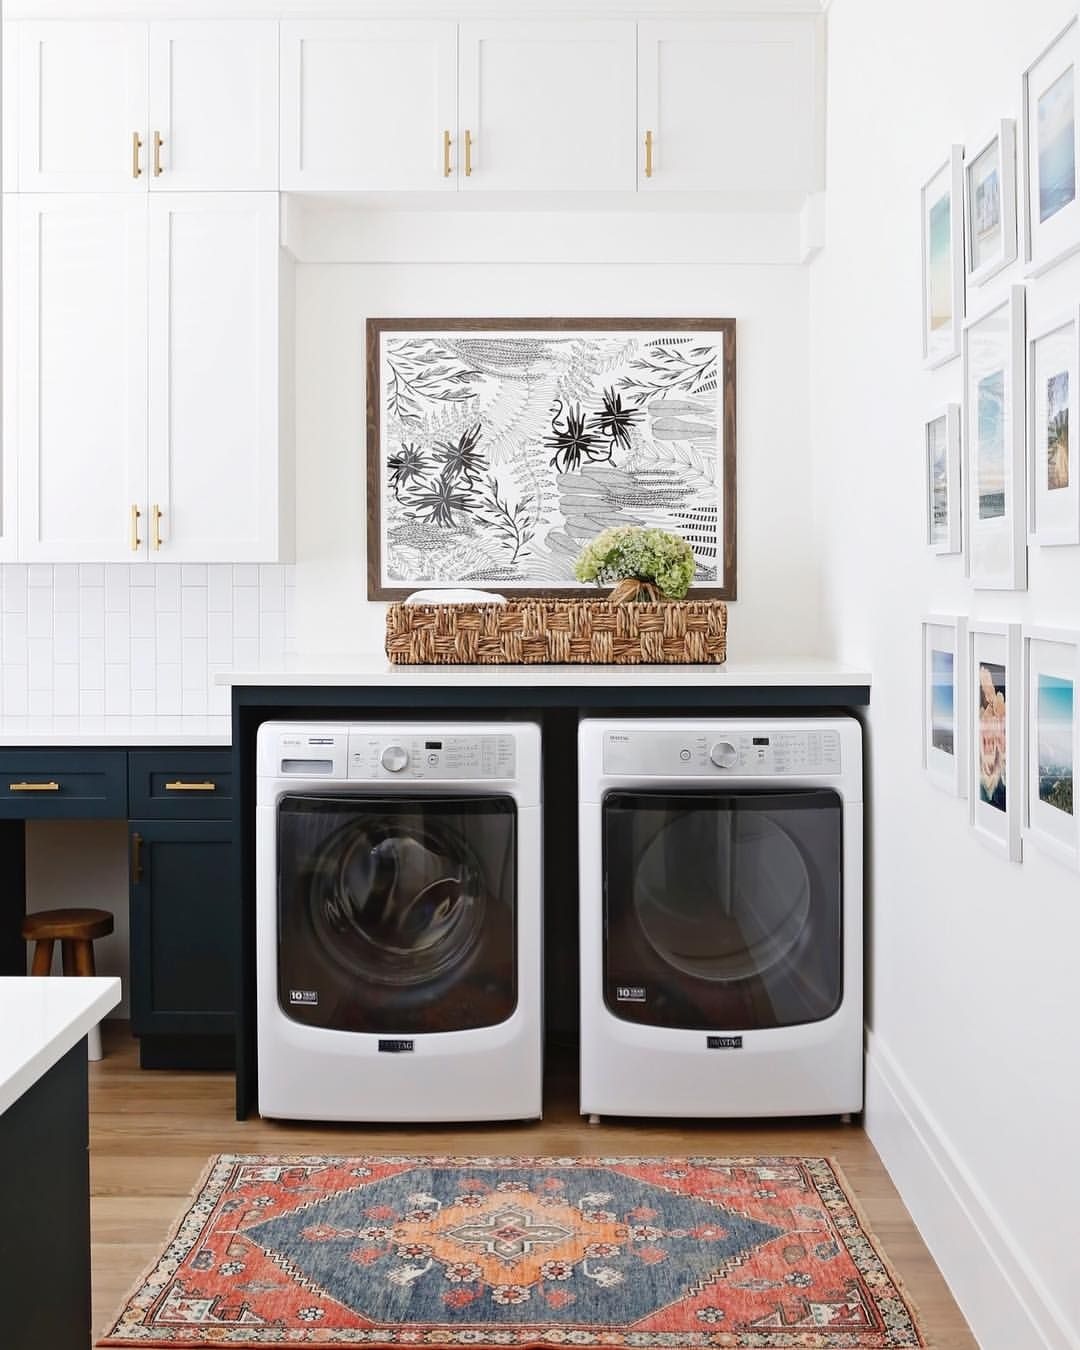 Love The Navy And White Combo For This Simple Laundry Room Rug From Scott Antique Mark Vintage Laundry Room Decor Laundry Room Wall Decor Small Laundry Rooms